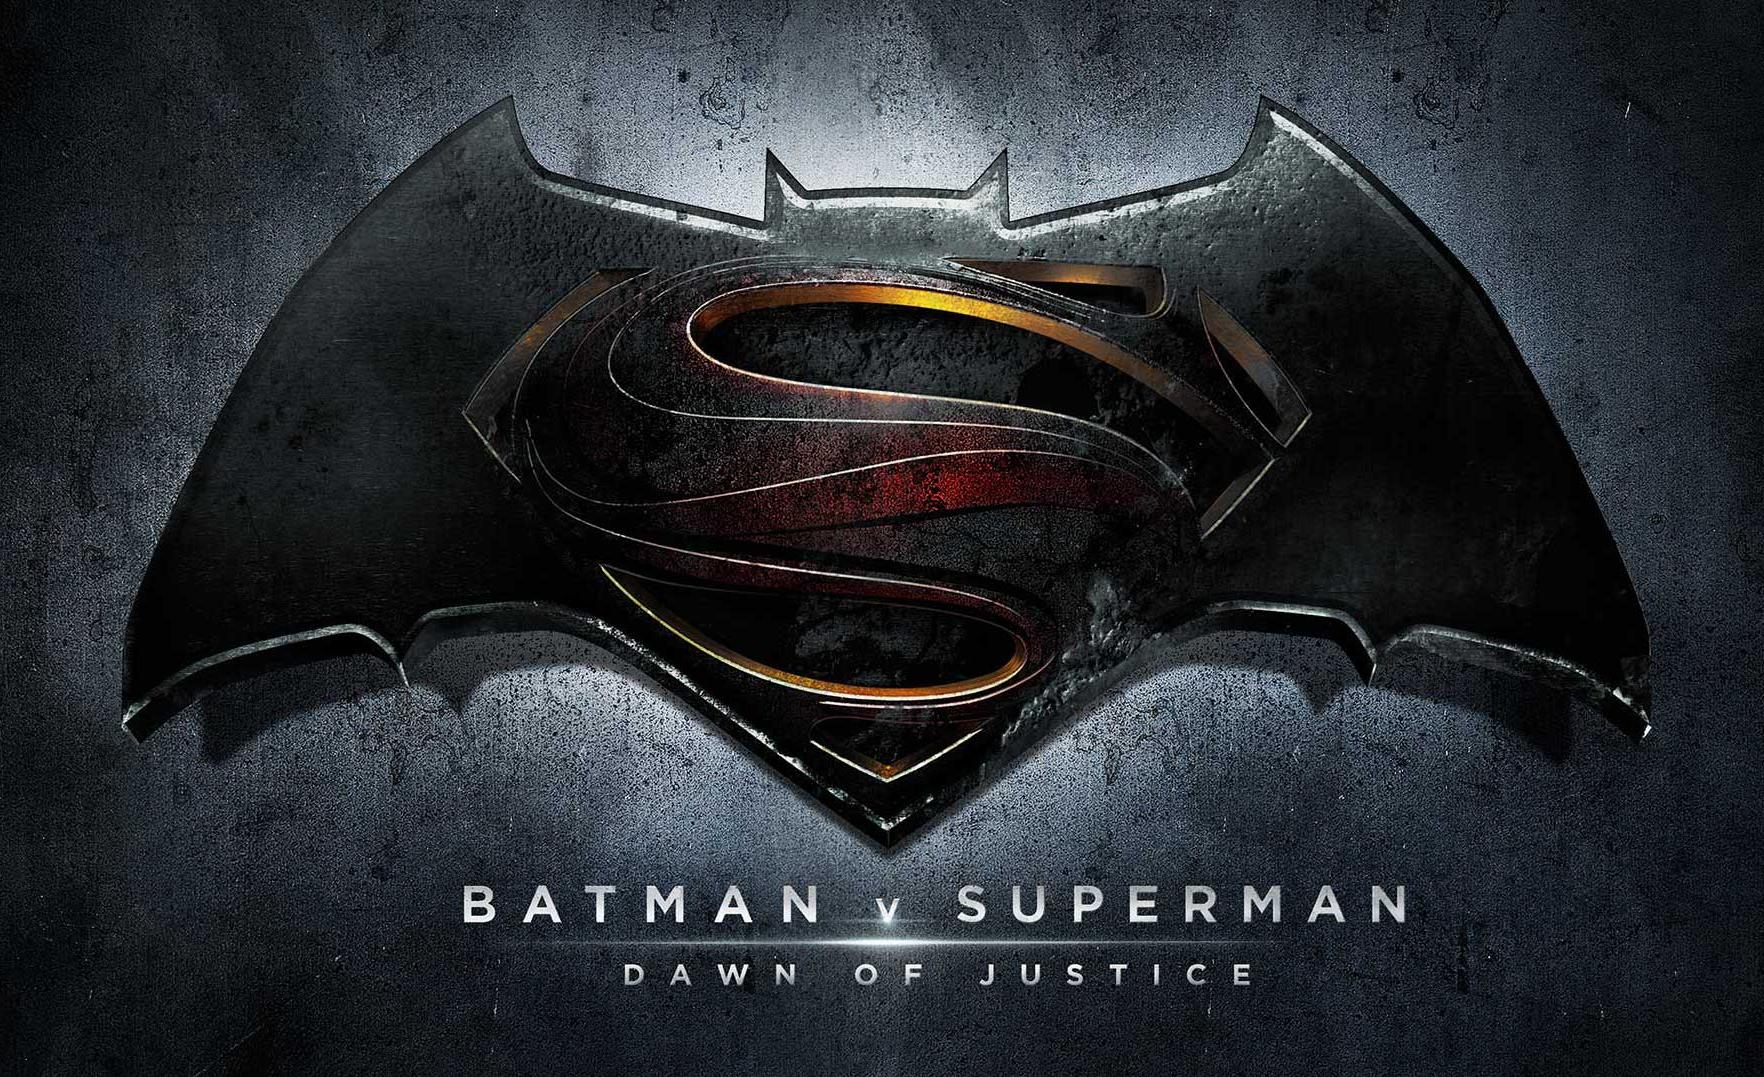 Batman_v_Superman_-_Dawn_of_Justice_logo